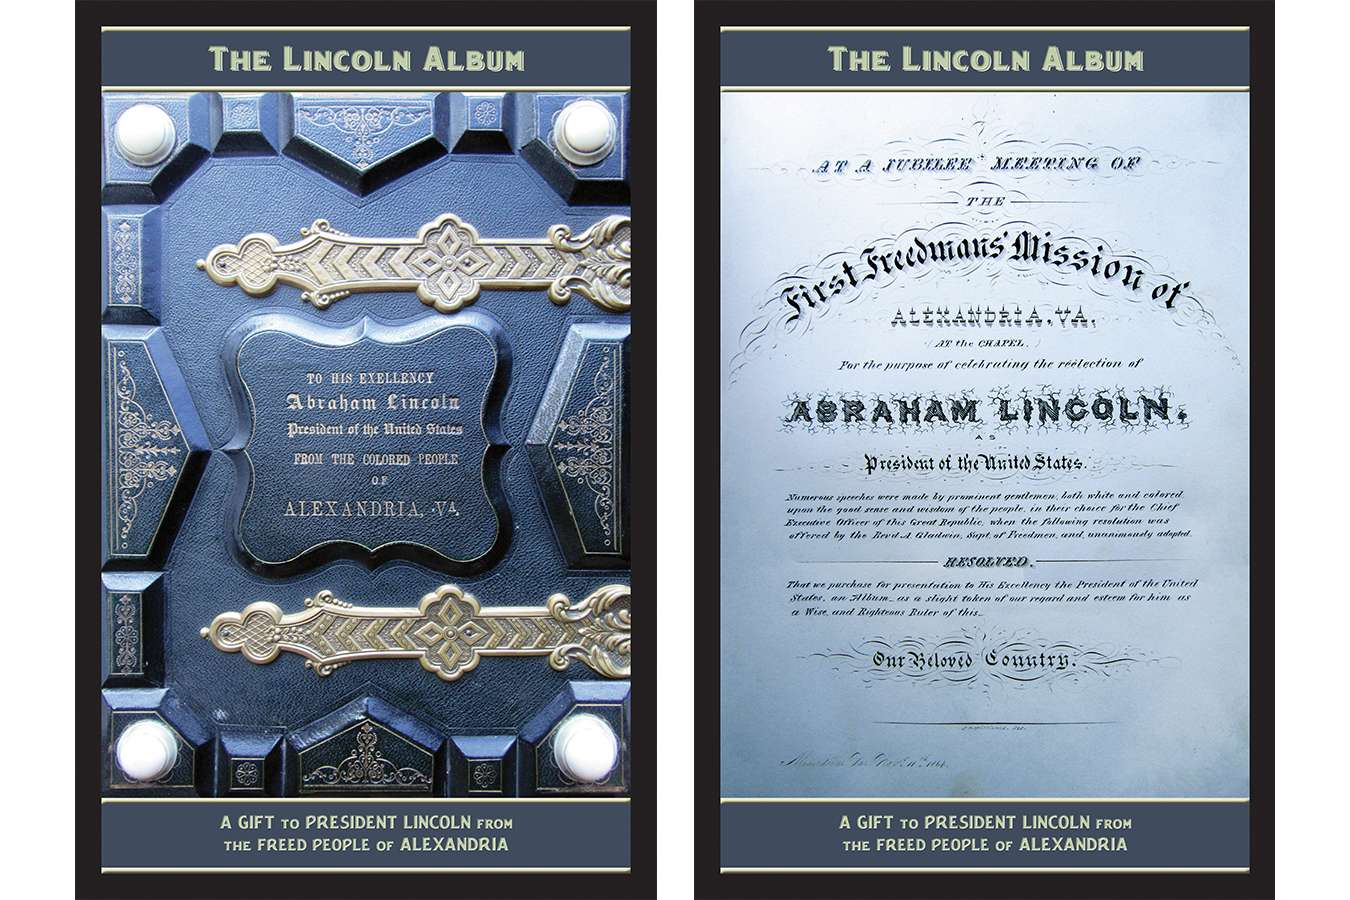 1 Linc Alb : Cover and Title Page of the Lincoln Album